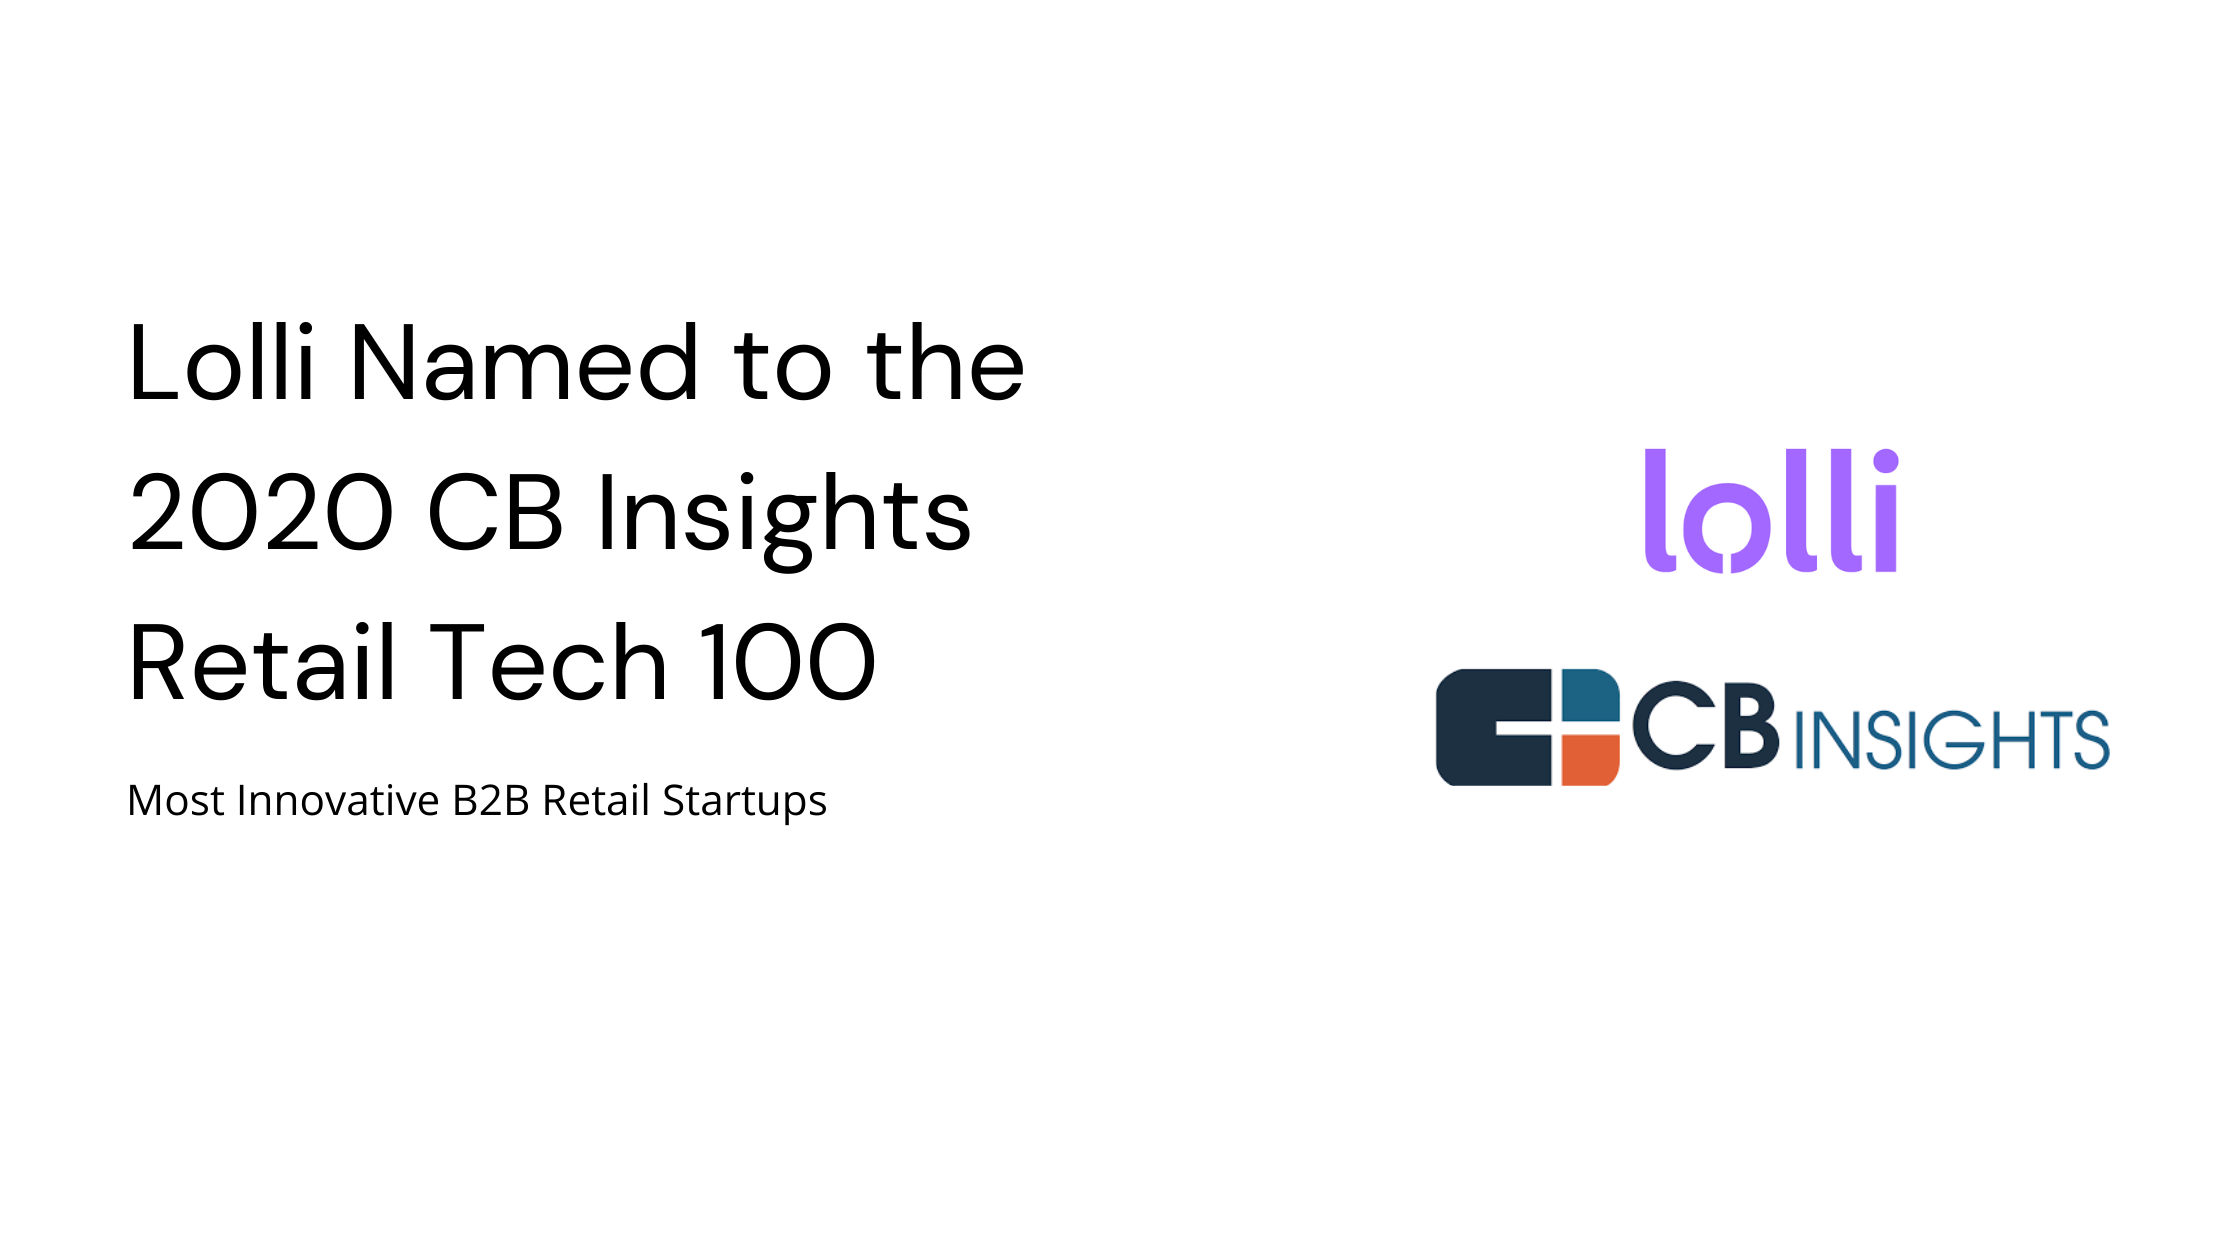 Lolli Named to the 2020 CB Insights Retail Tech 100